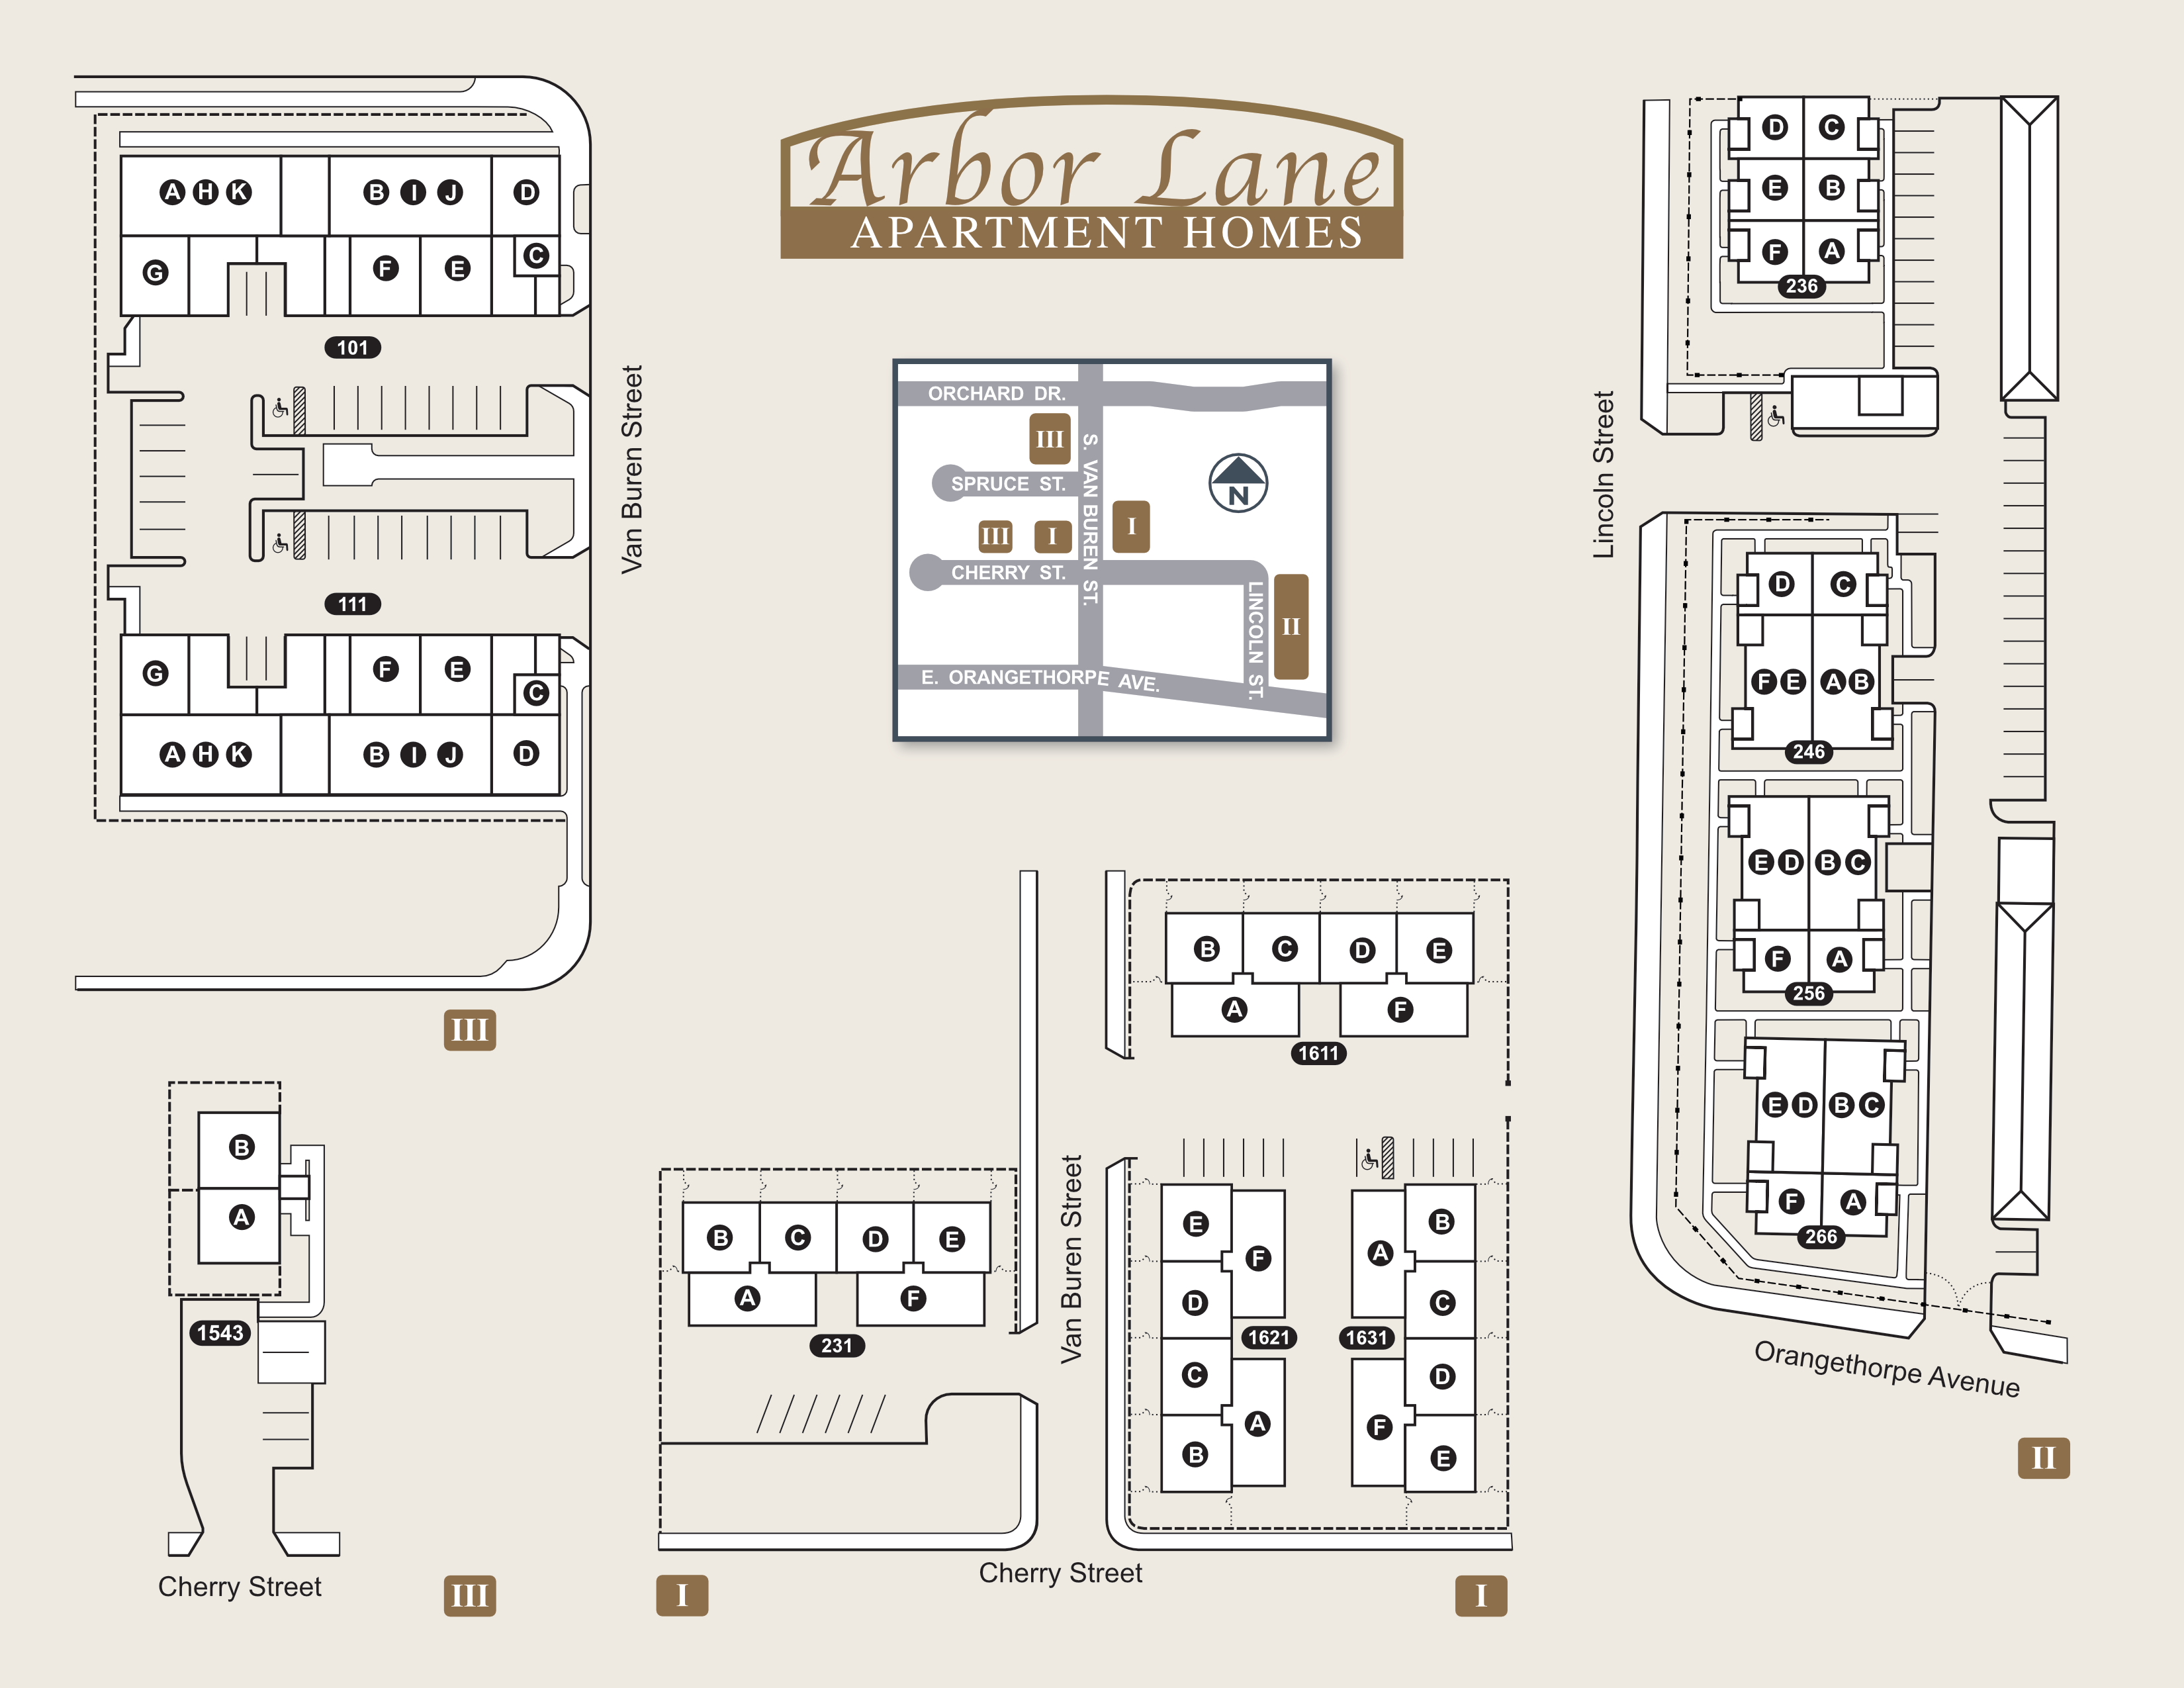 Arbor Lane Apartment Homes site map